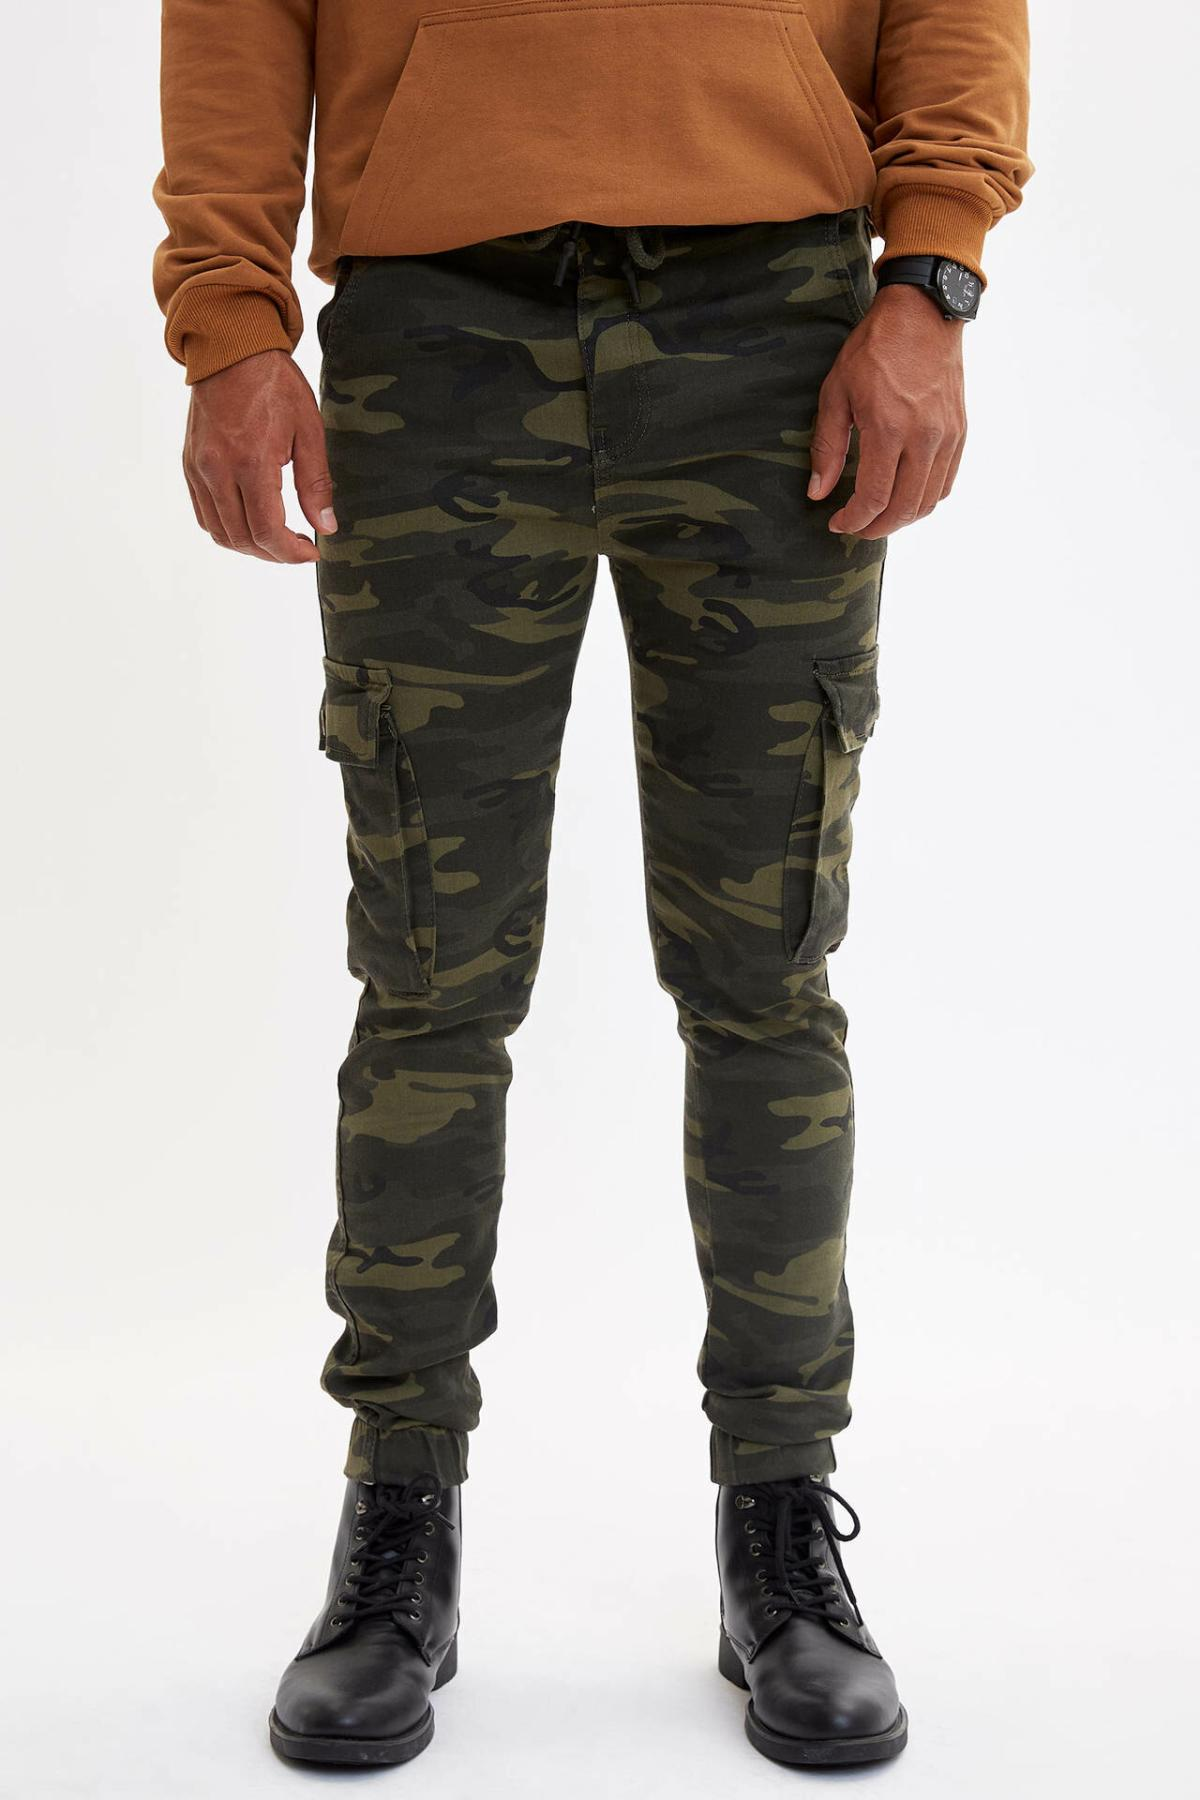 DeFacto Fashion Sport Pant Men's Casual Drawstring Pants Leisure Camouflage Long Pants Male Sweatpants New- M5105AZ19AU